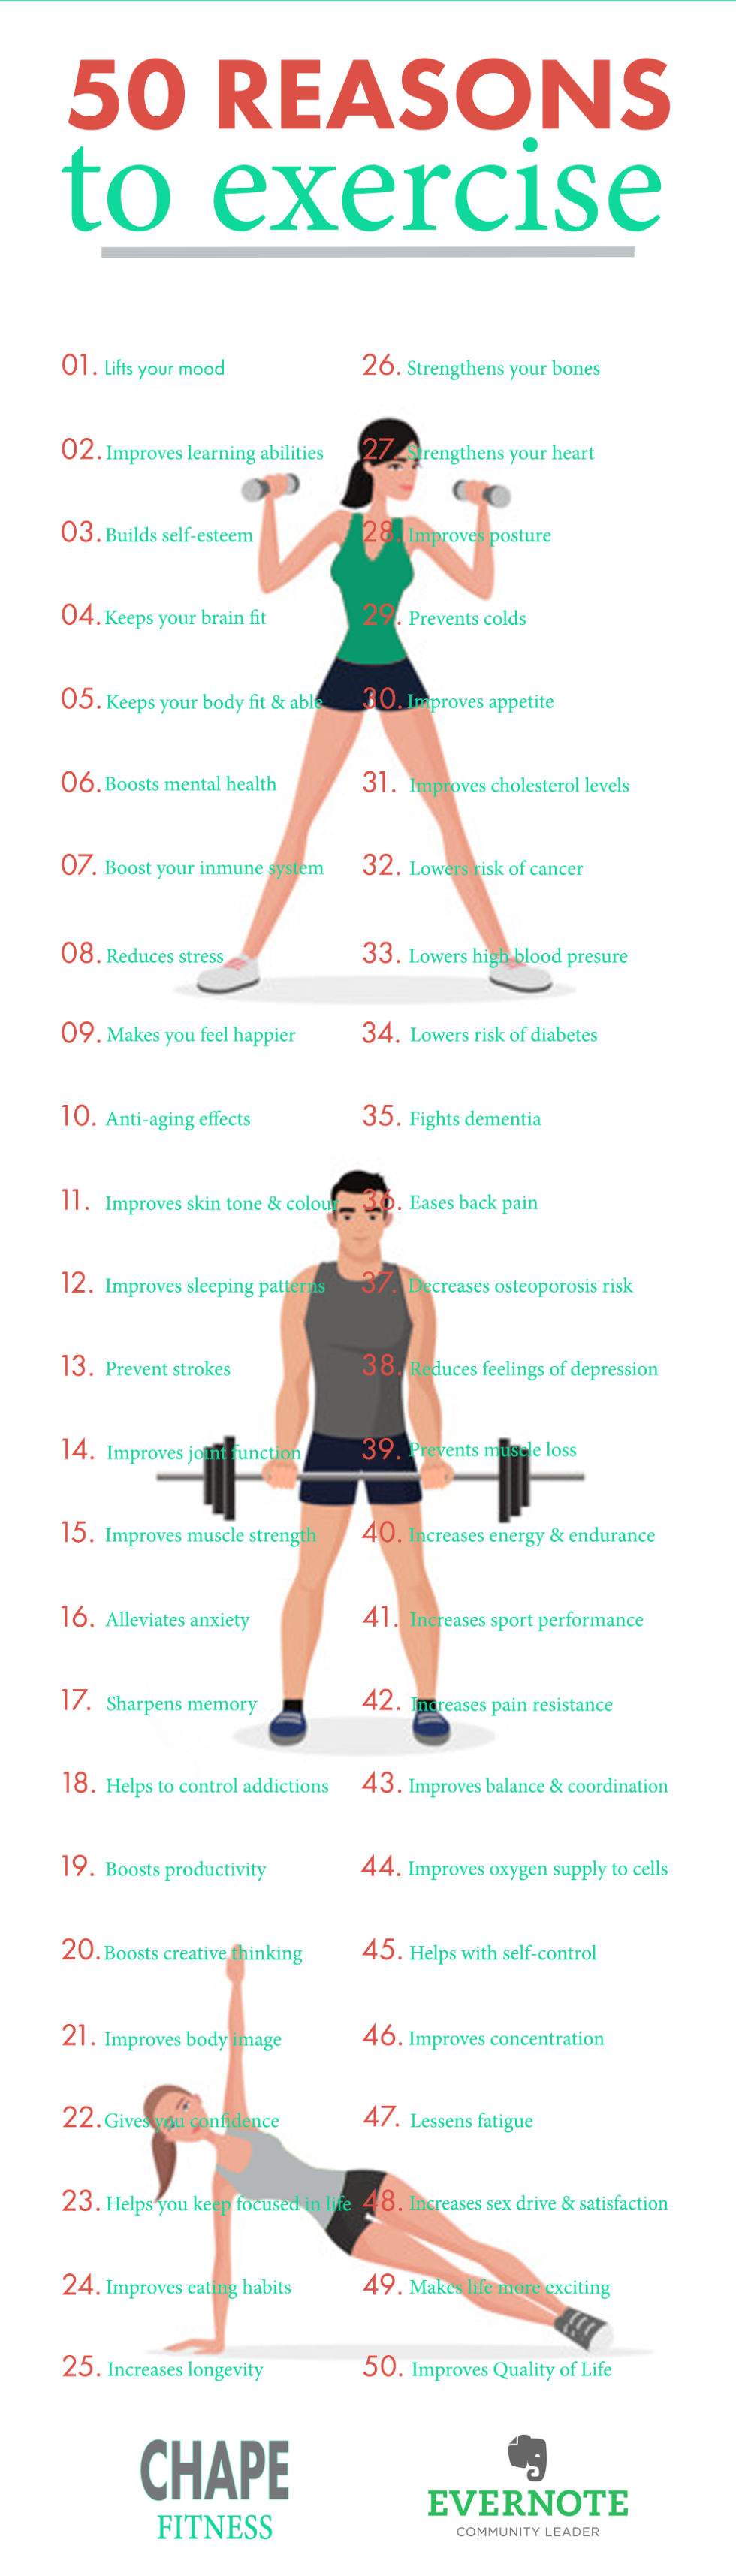 50 reasons exercise is good for you